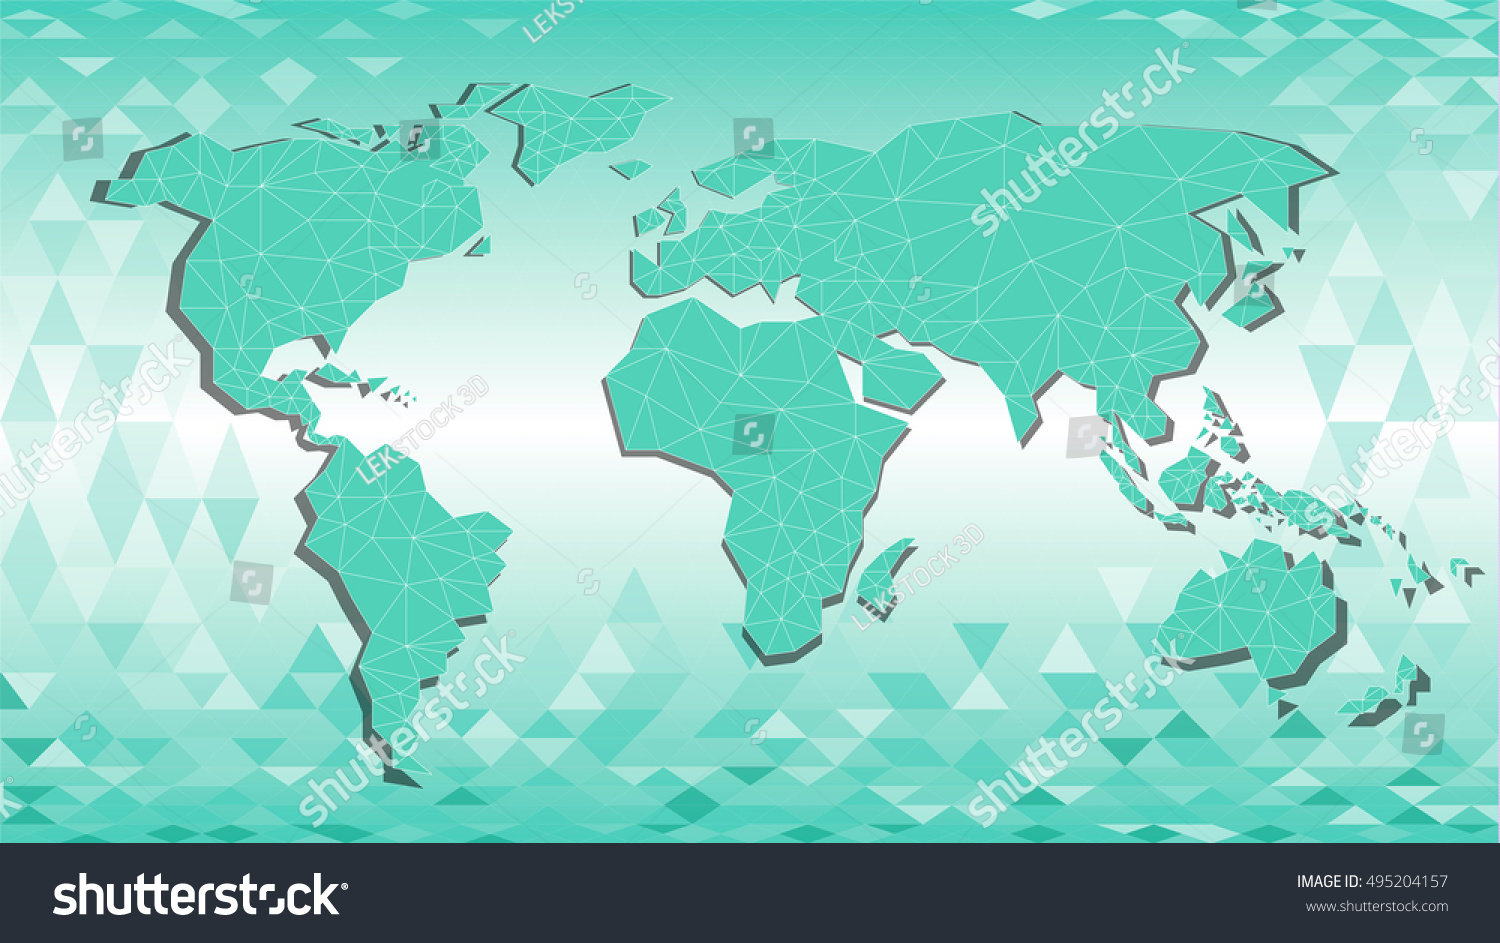 Polygonal abstract world map triangle line vectores en stock polygonal abstract world map triangle line stel color polygonal background vector illustation gumiabroncs Image collections